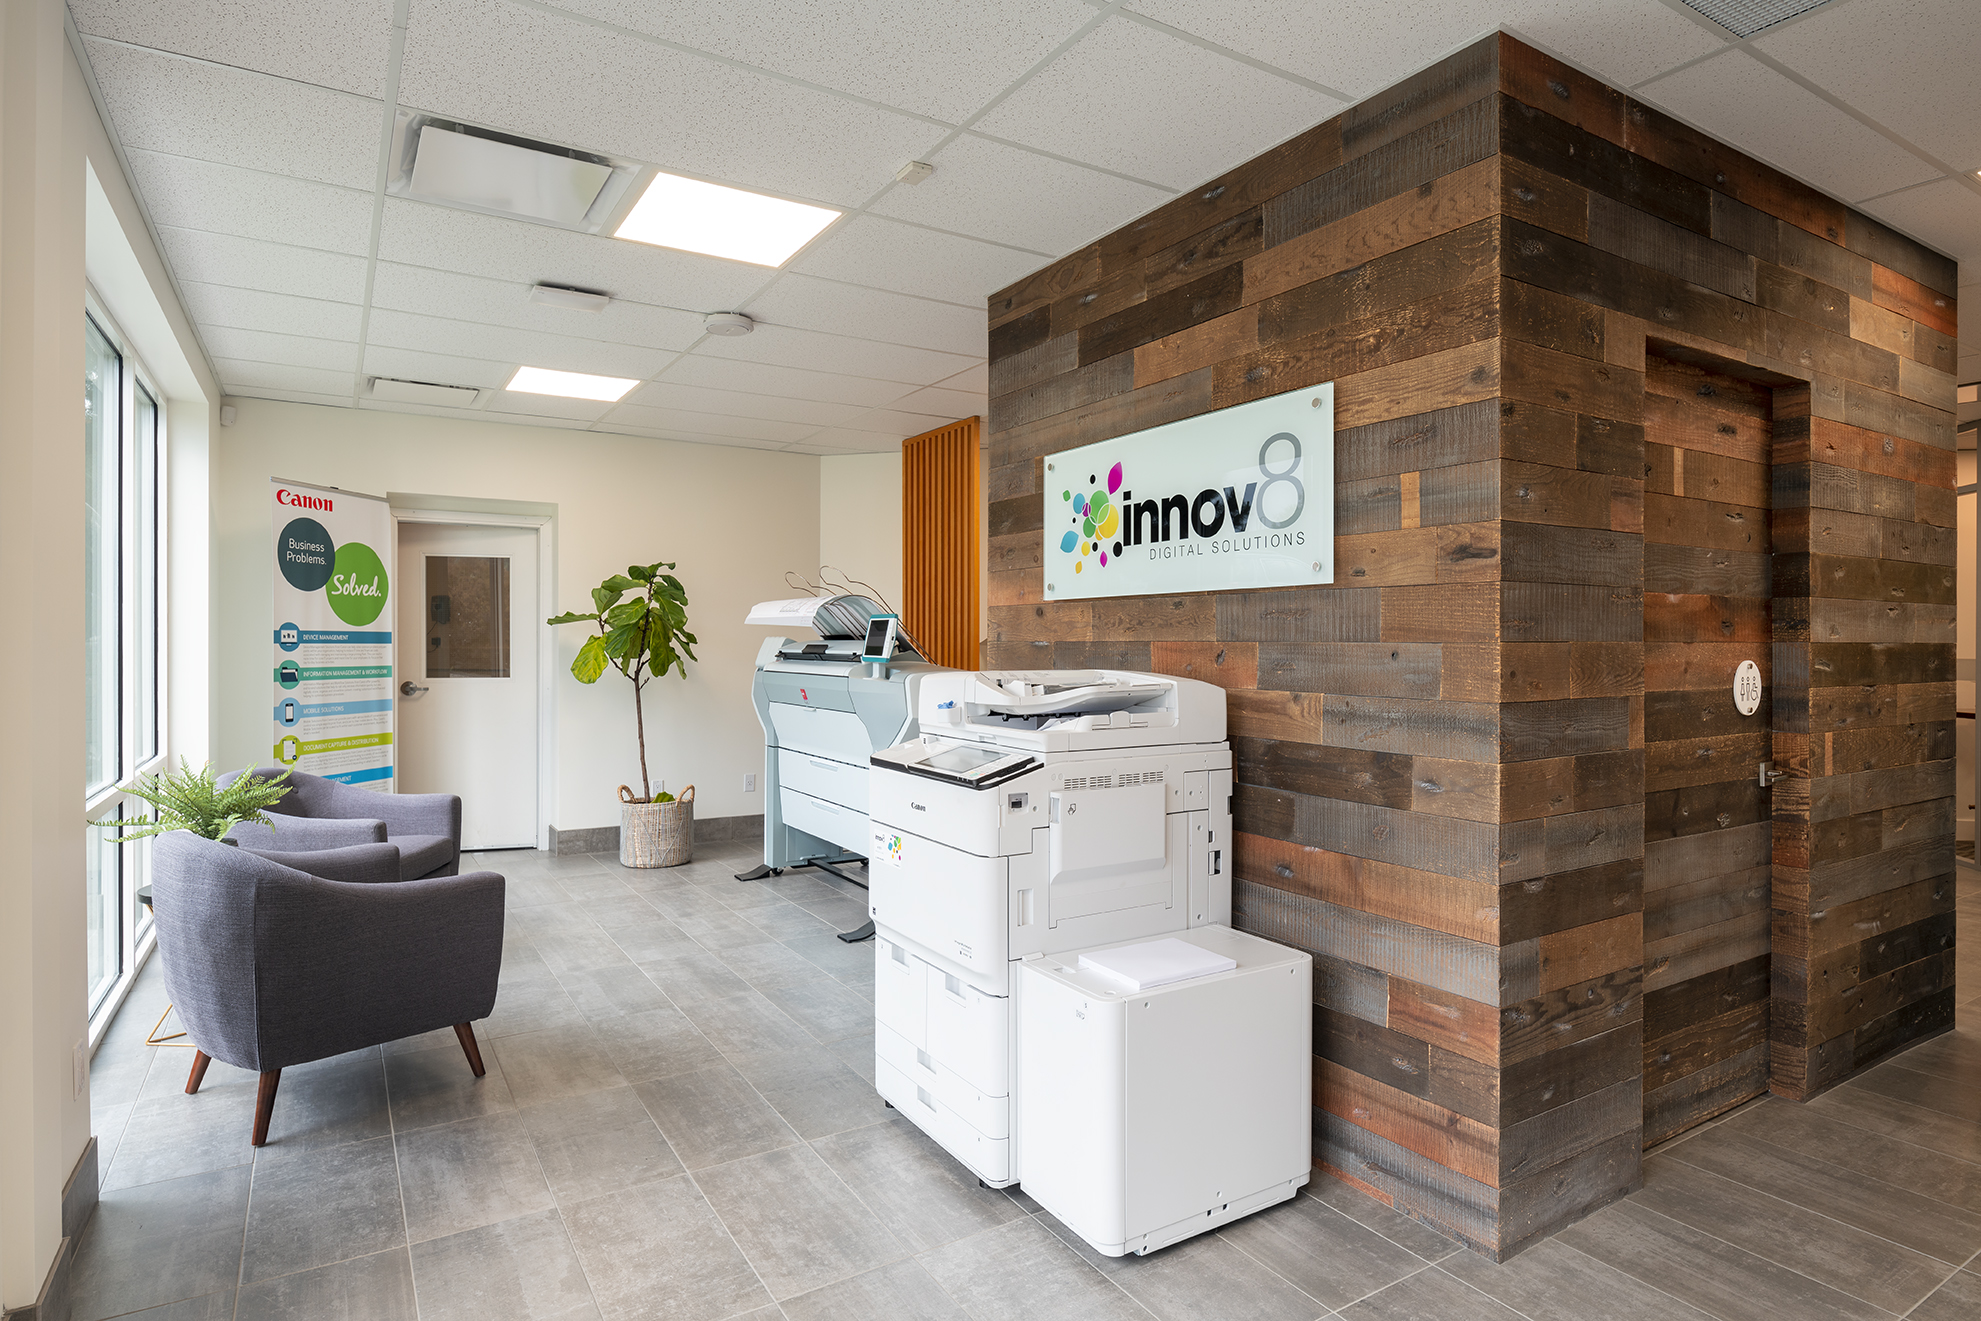 innov8-managed-print-services